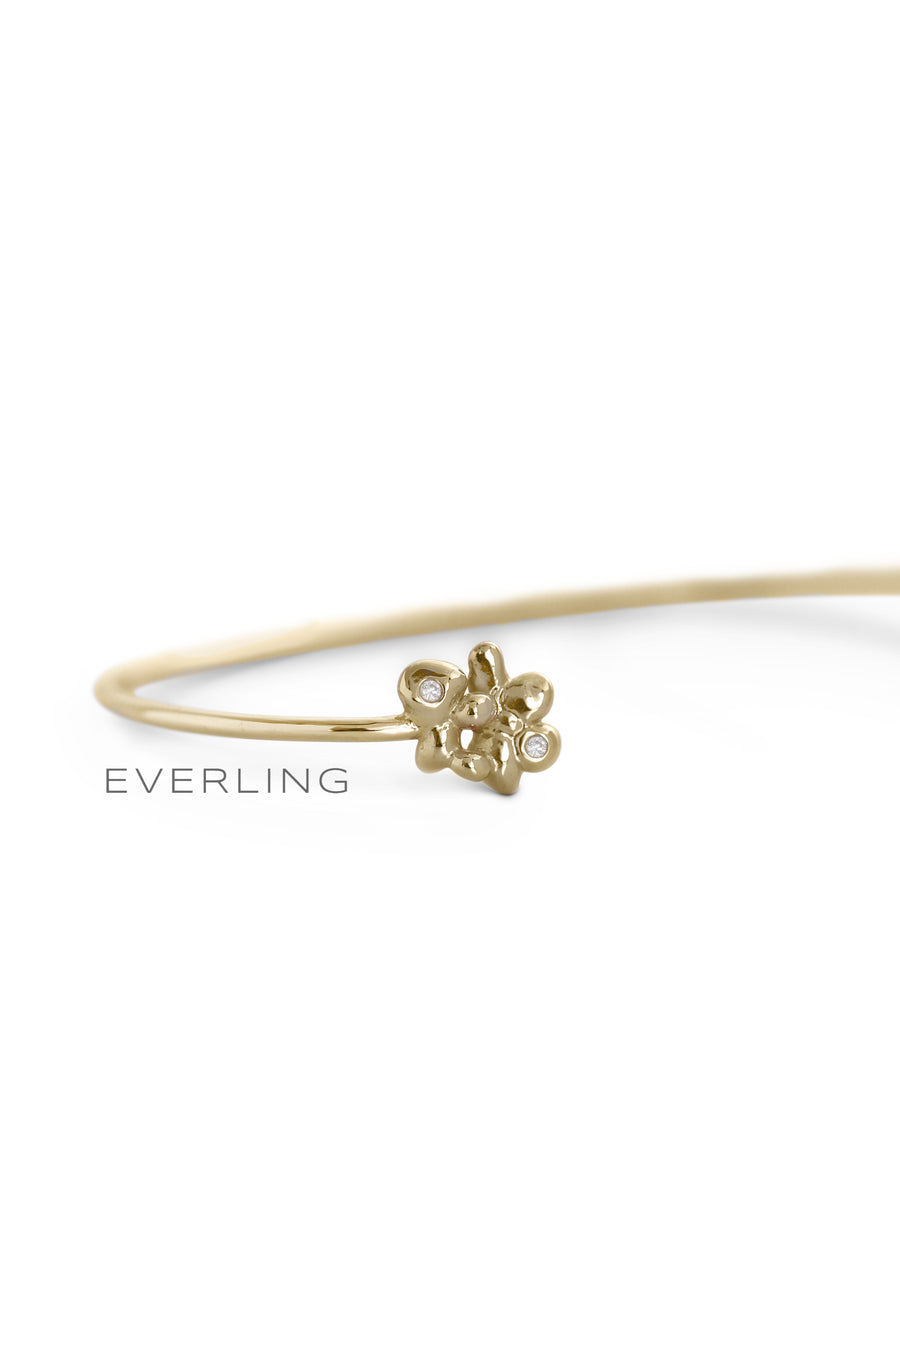 Detail- Recycled 14K Yellow Gold Bubble and Diamond Accent Cuff Bracelet. #designerjewelry www.everlingjewelry.com